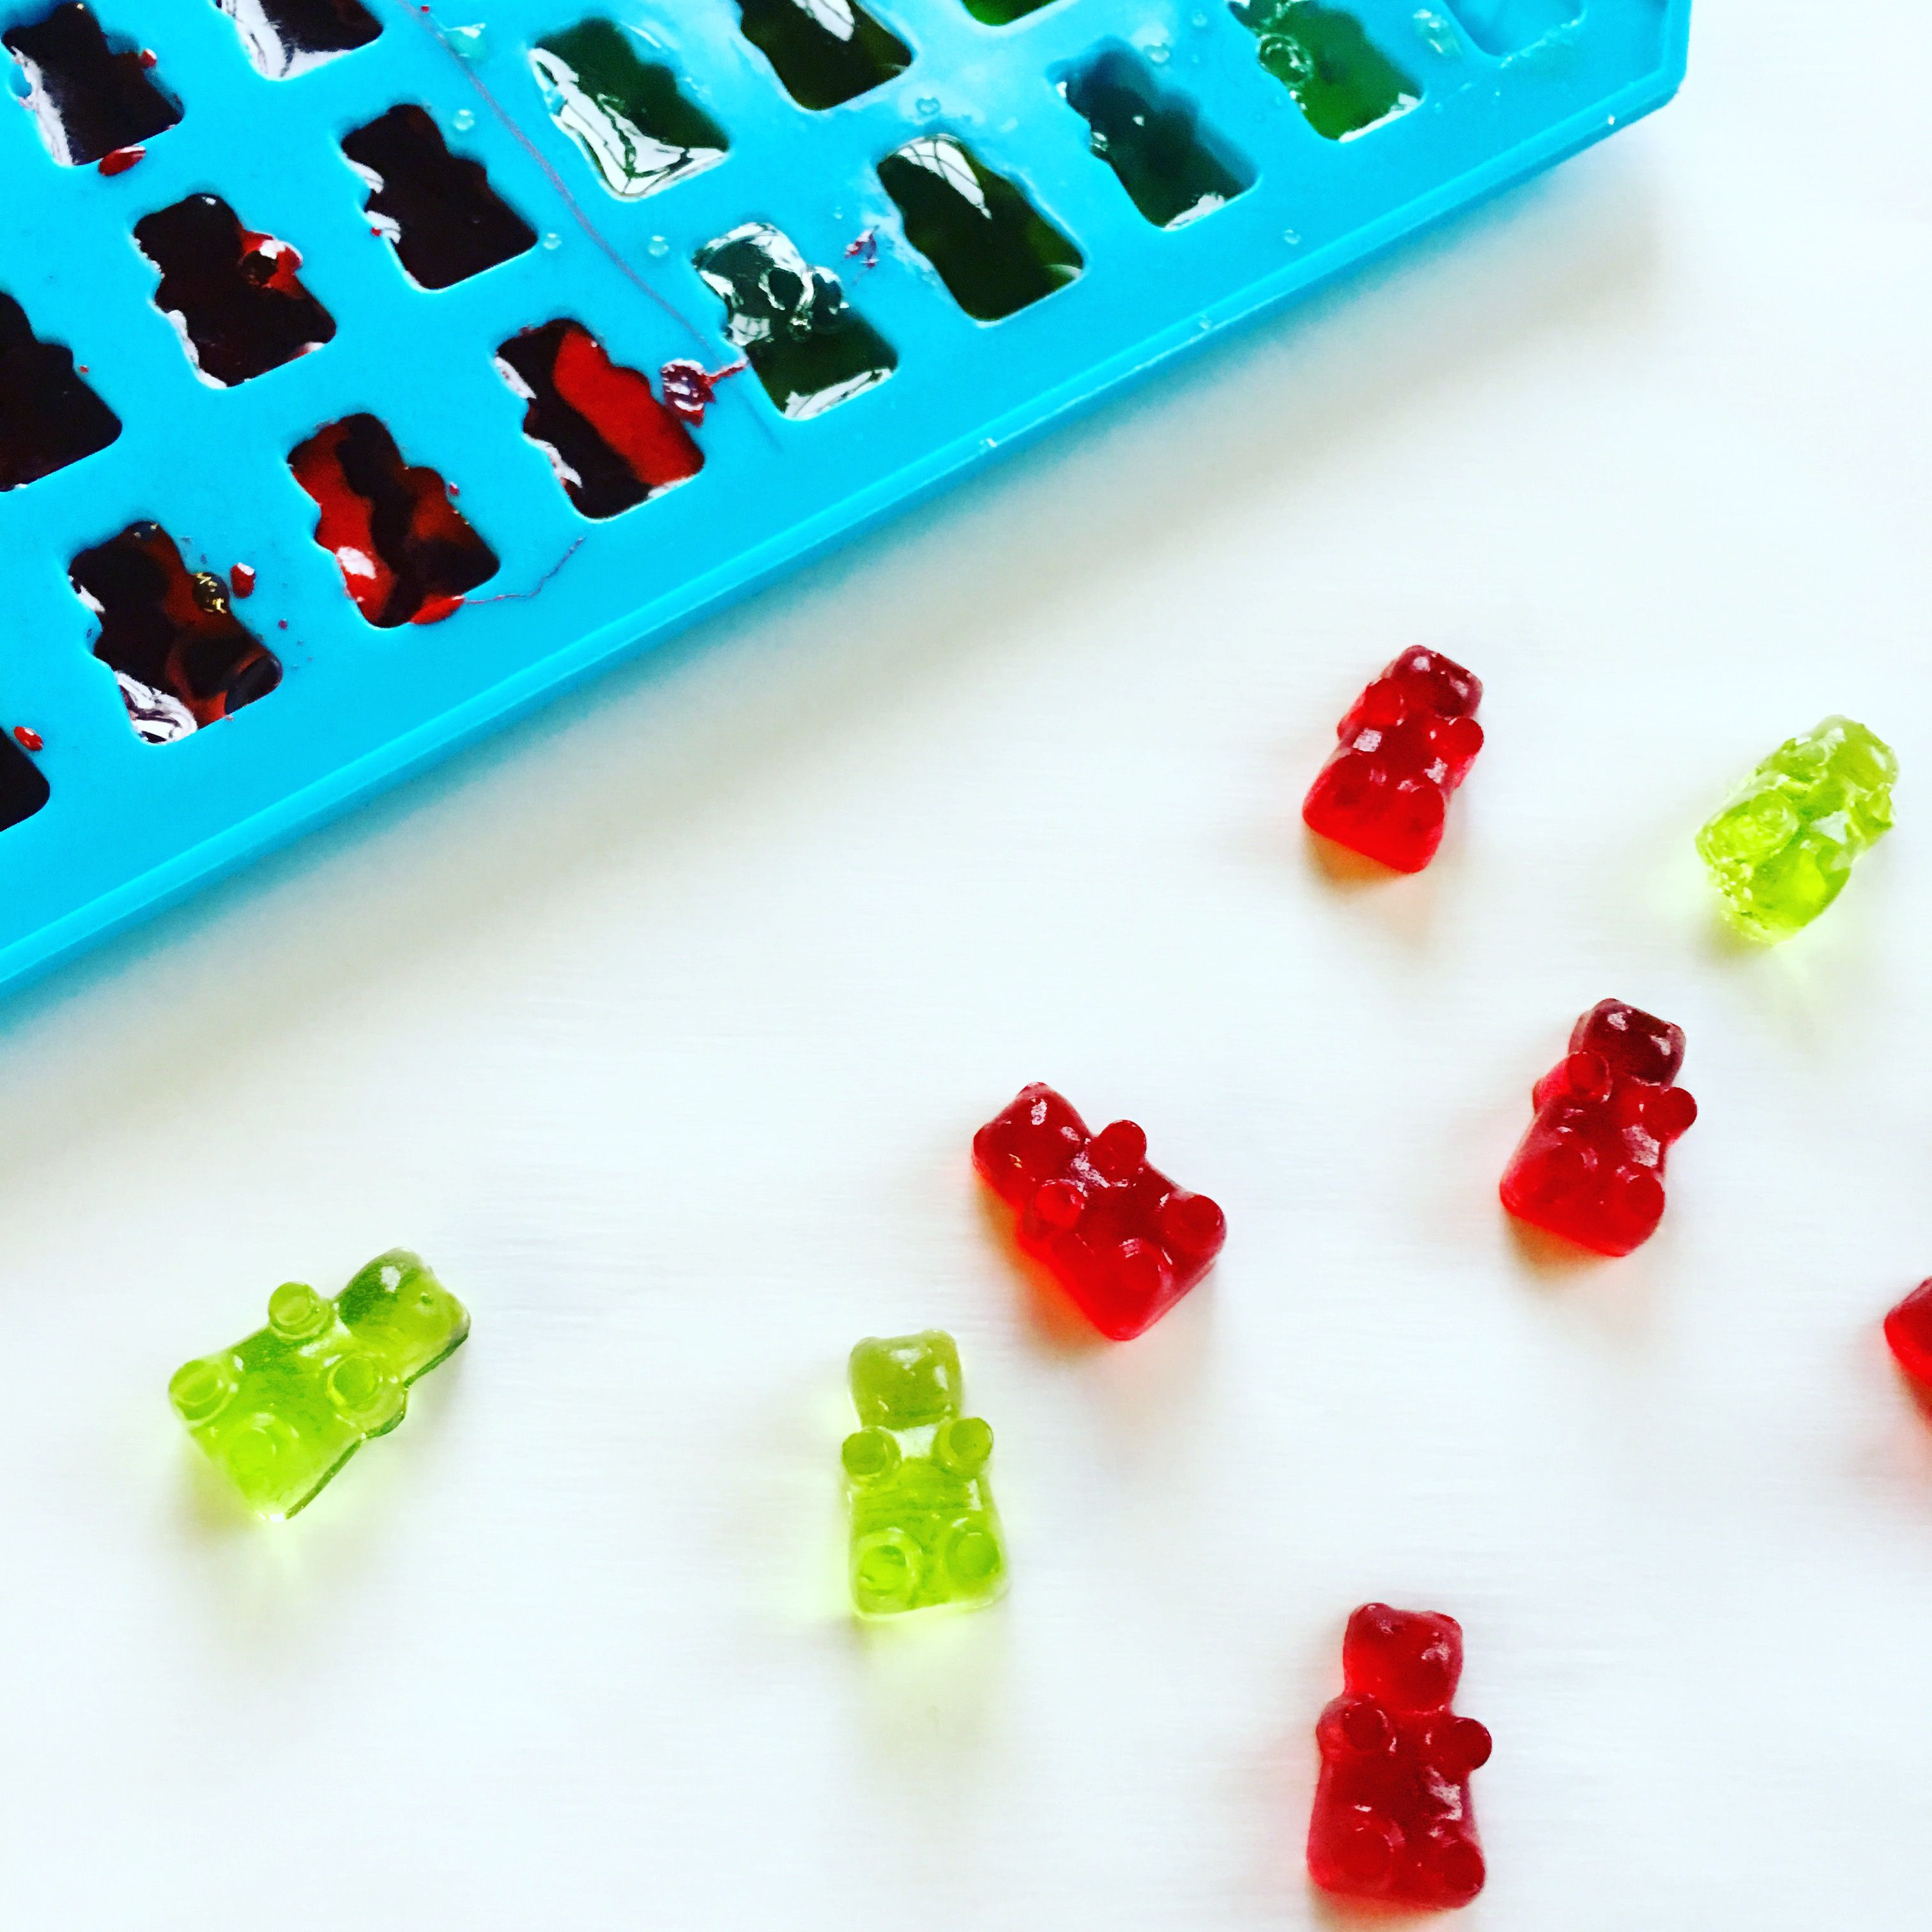 Homemade Gummy Bears Is A Perfect Activity To Do With Kids